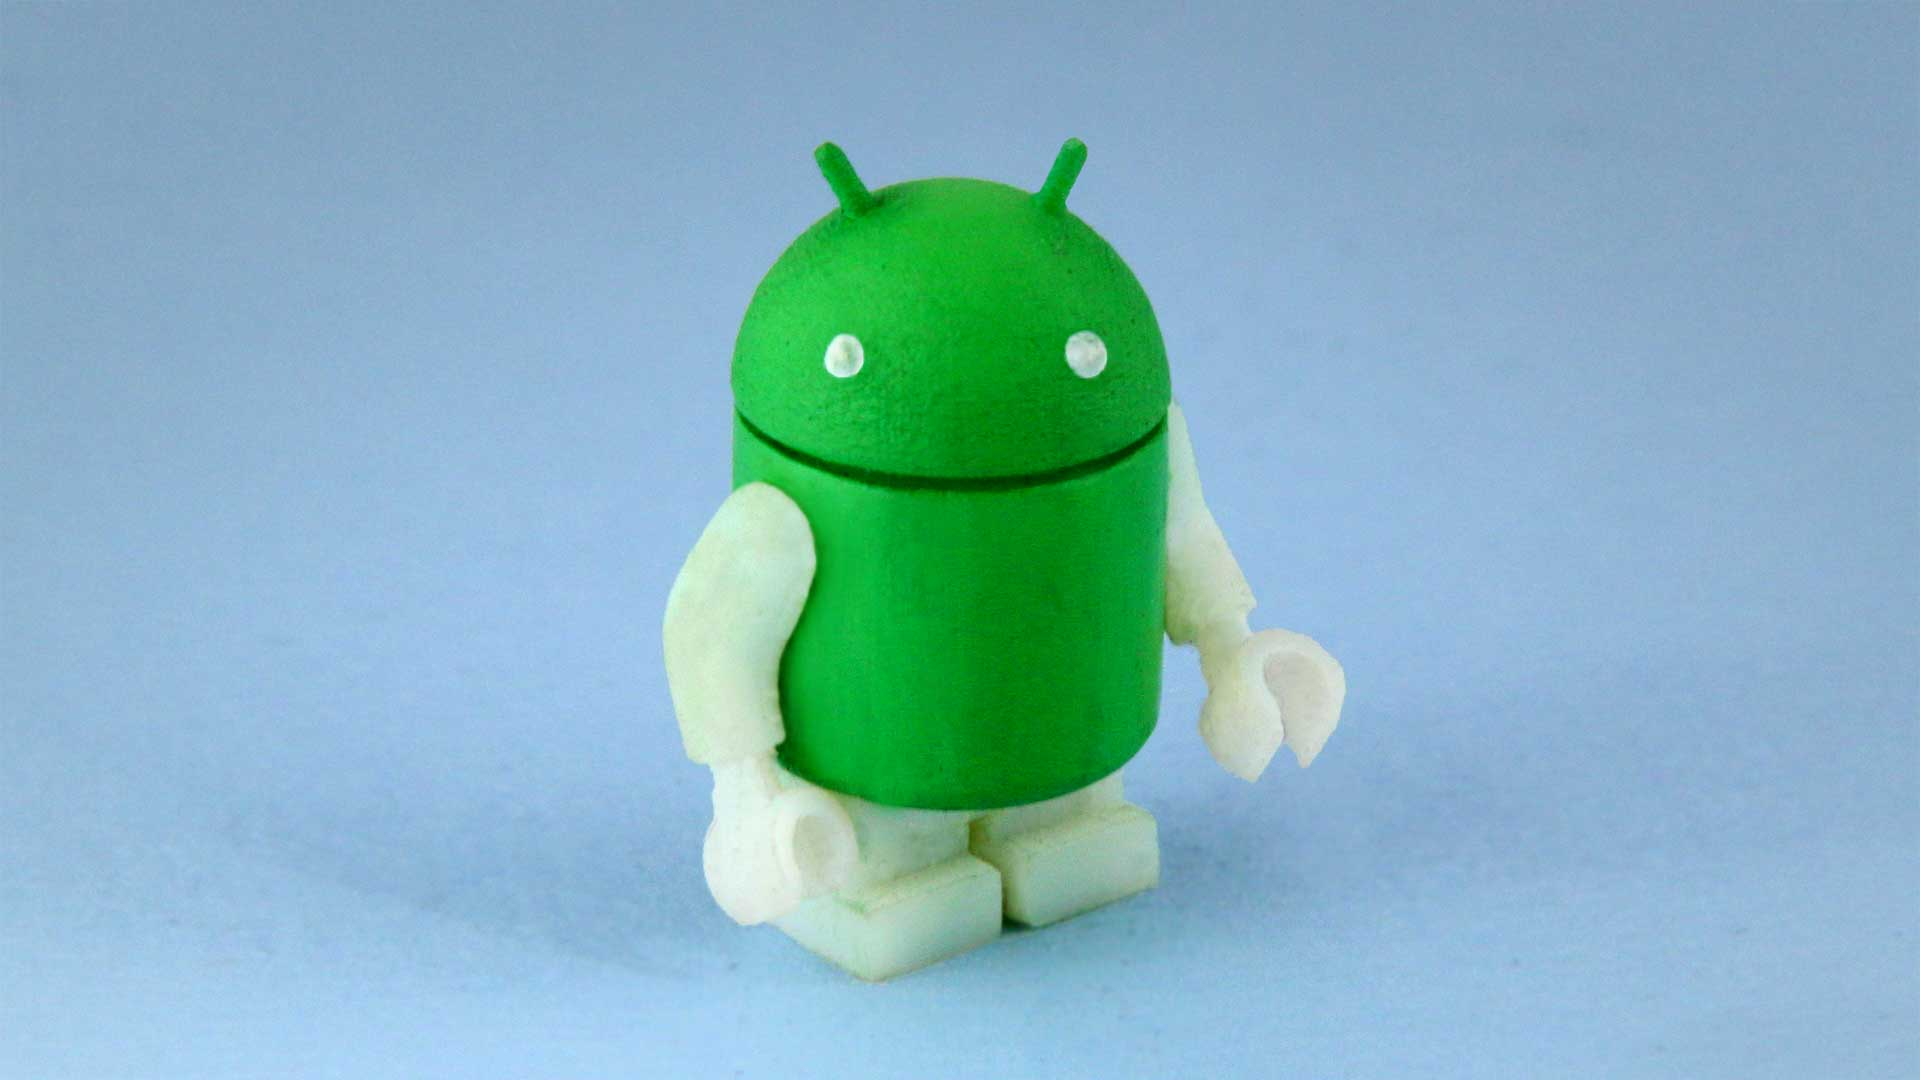 lego android wallpaper high definition high quality widescreen